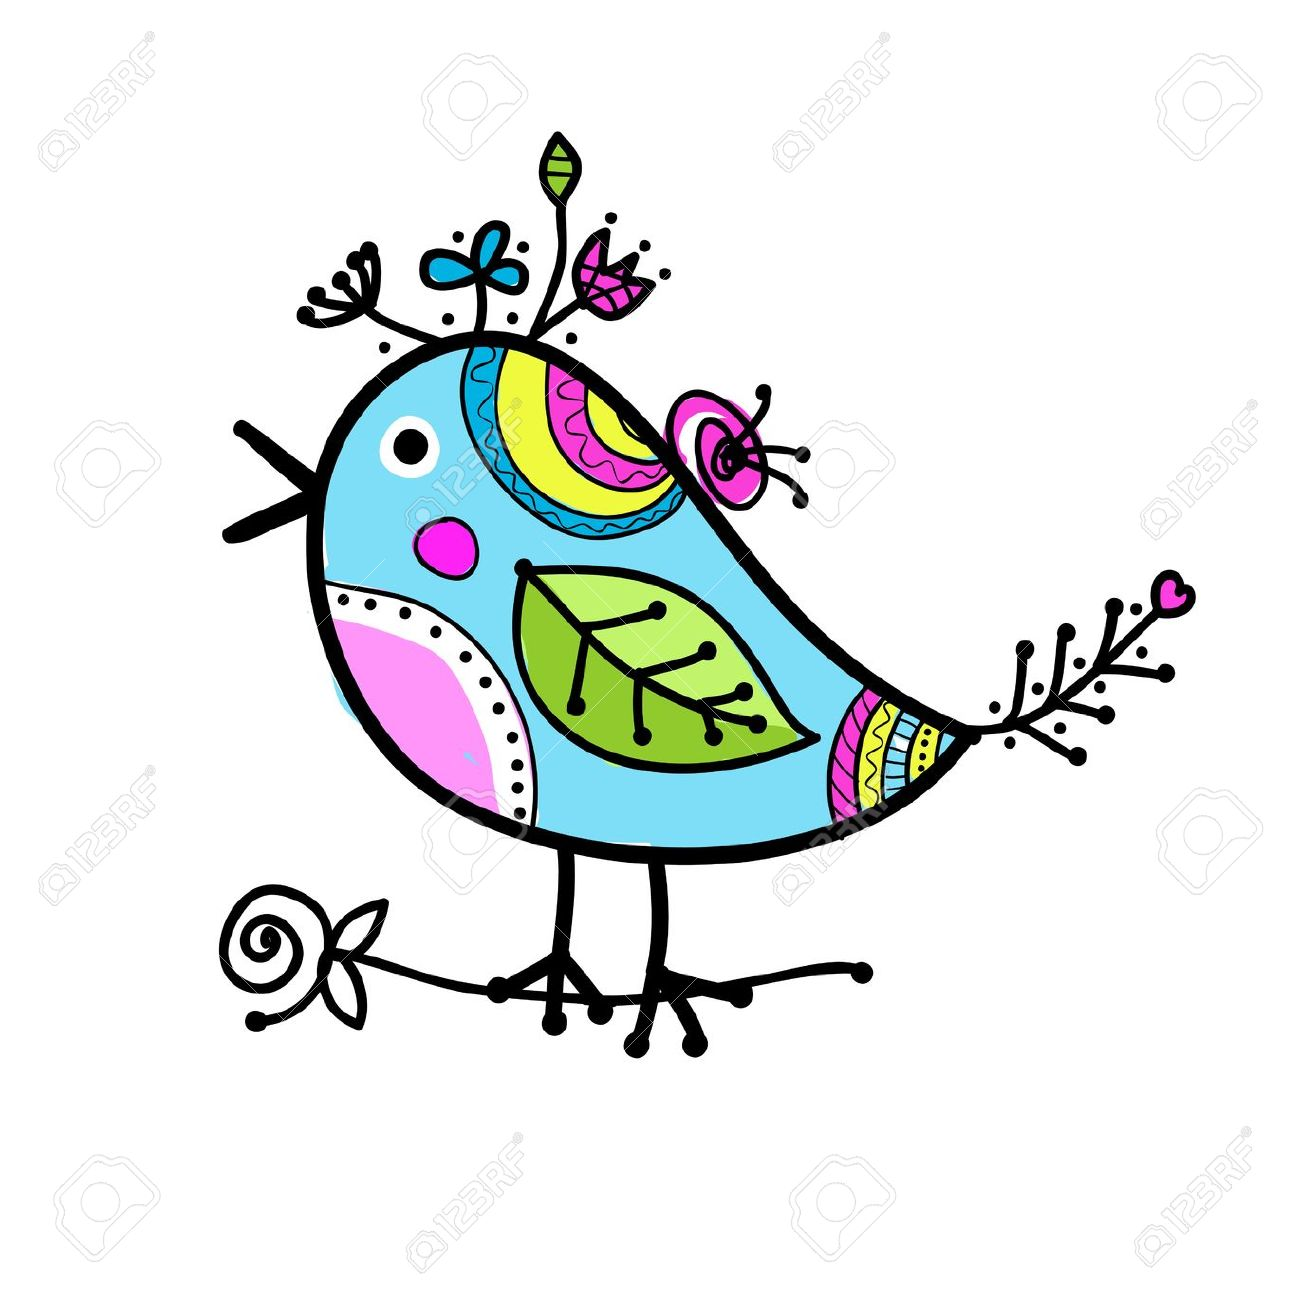 sketch of funny colorful bird for your design royalty free